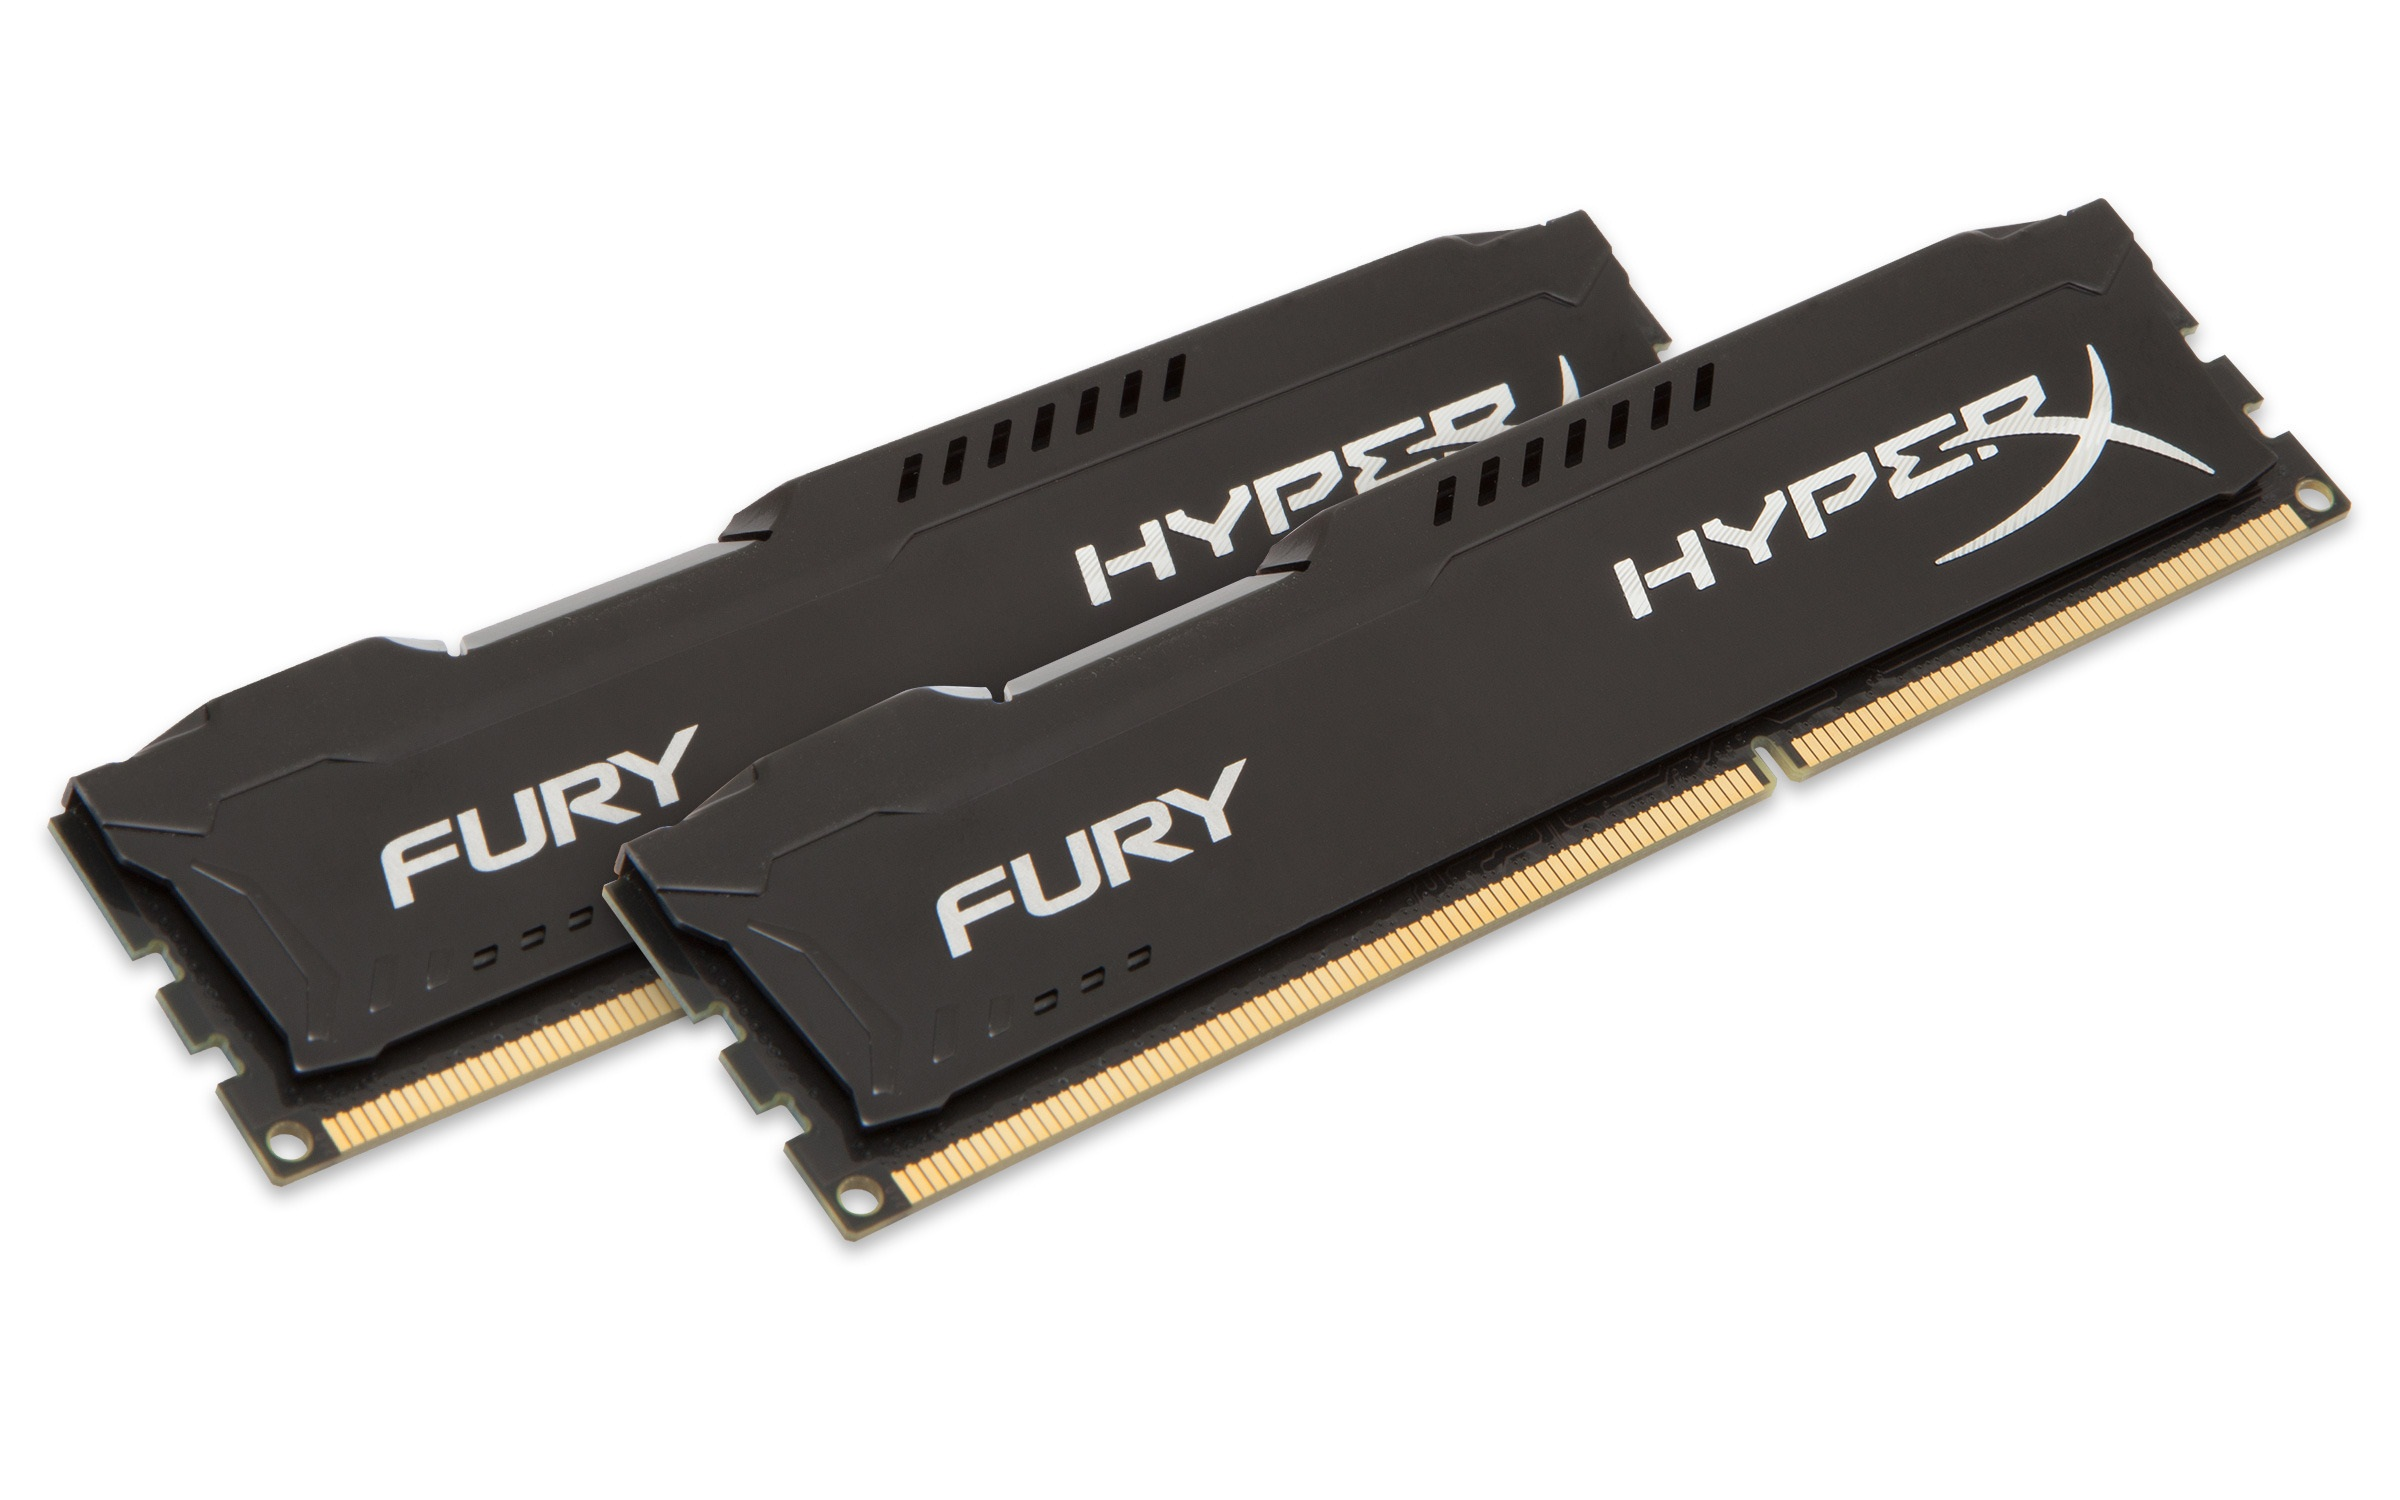 KINGSTON 16GB 1866MHz DDR3 CL10 DIMM (Kit of 2) HyperX FURY Black Series